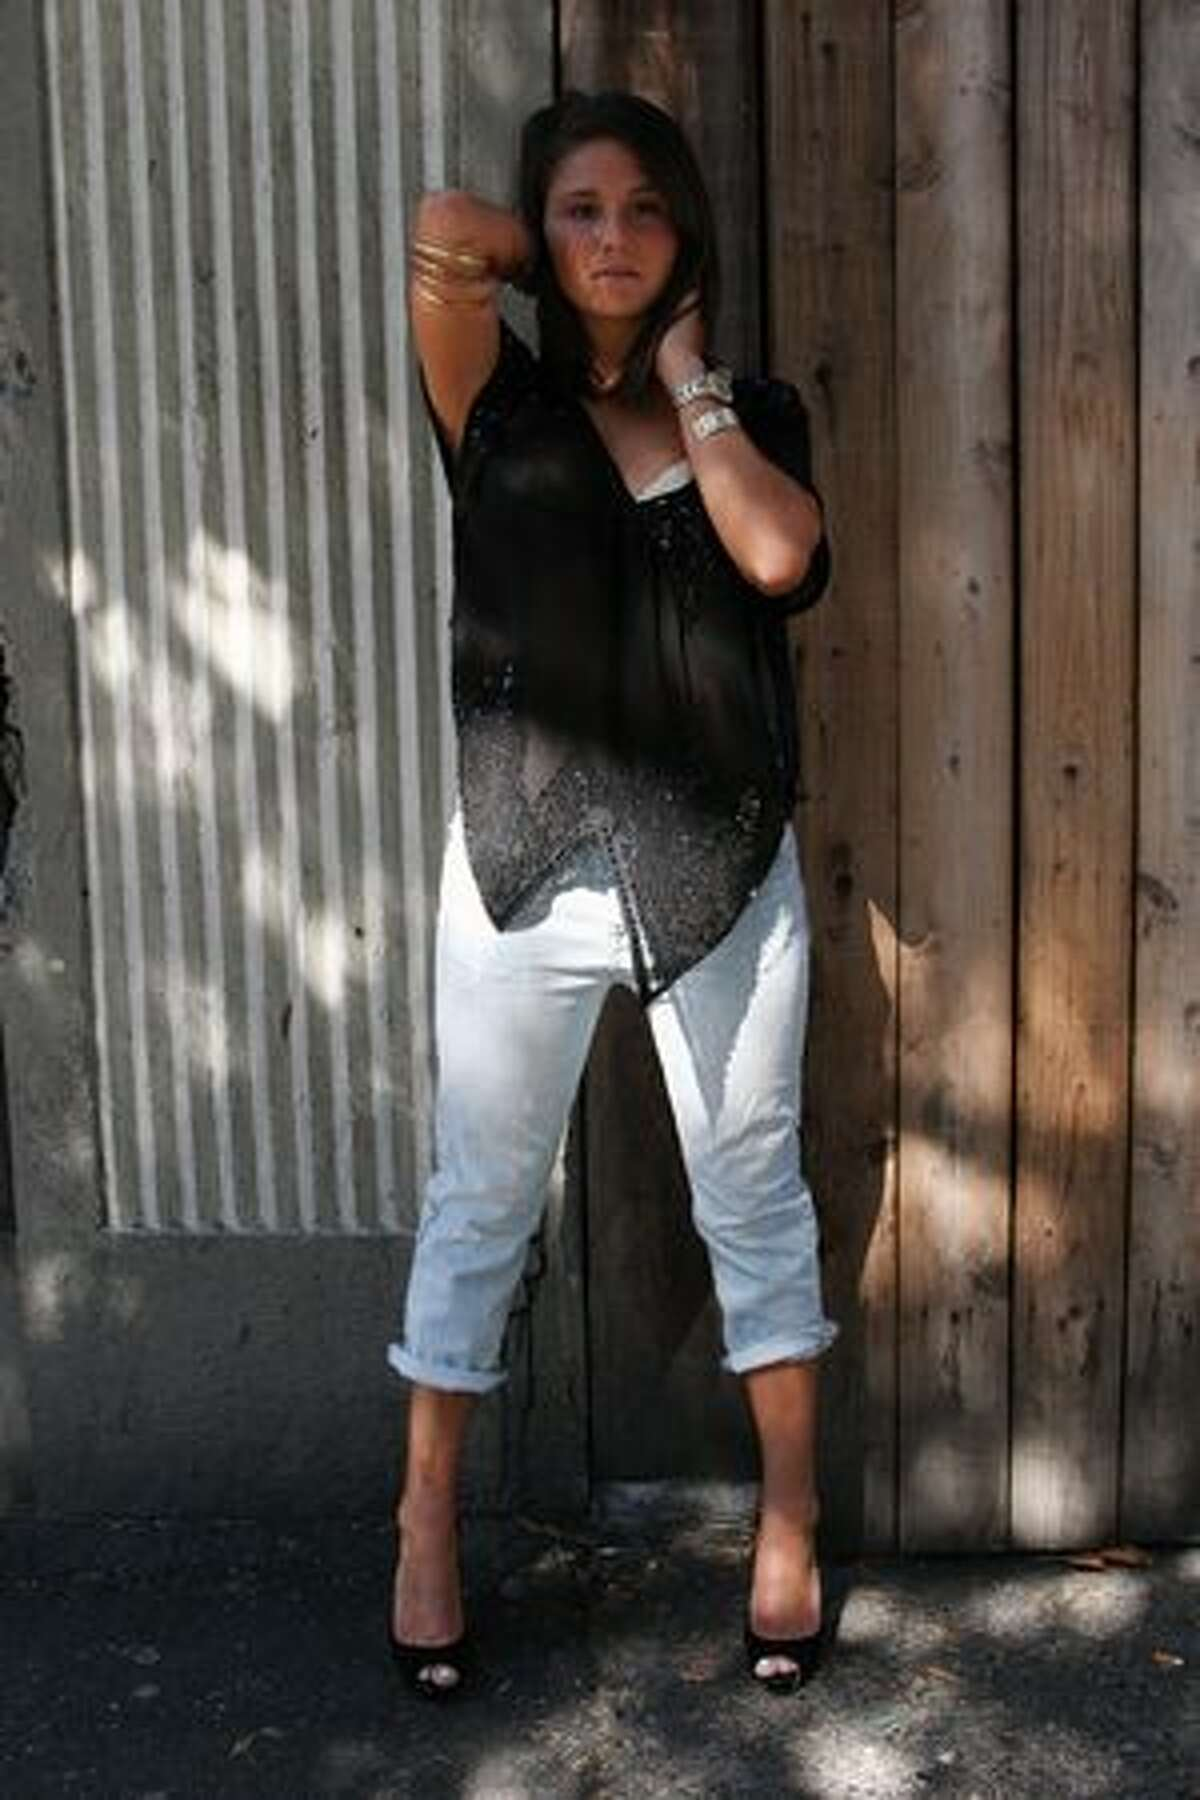 Alexus Shefts, in-house model for Strut Boutique, sporting a more Tomboyish look.